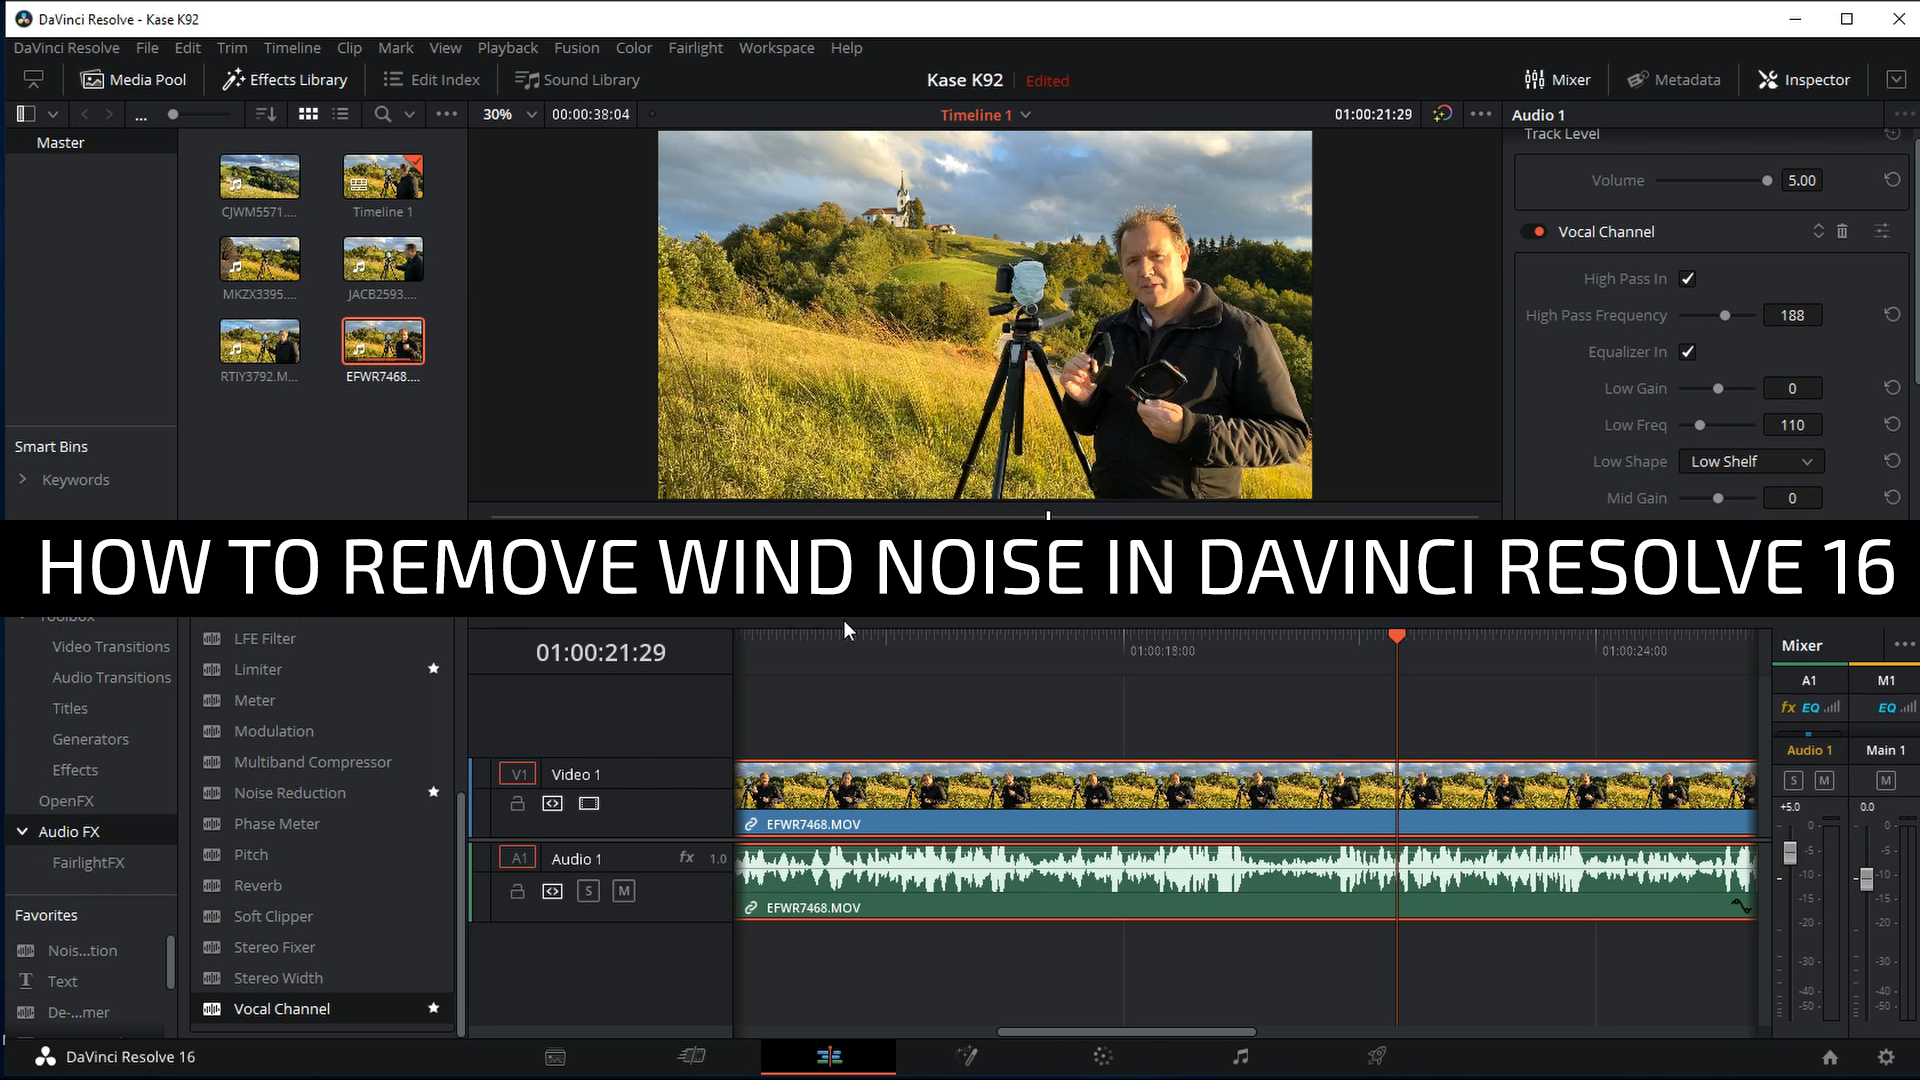 remove wind noise from video using Davinci Resolve 16